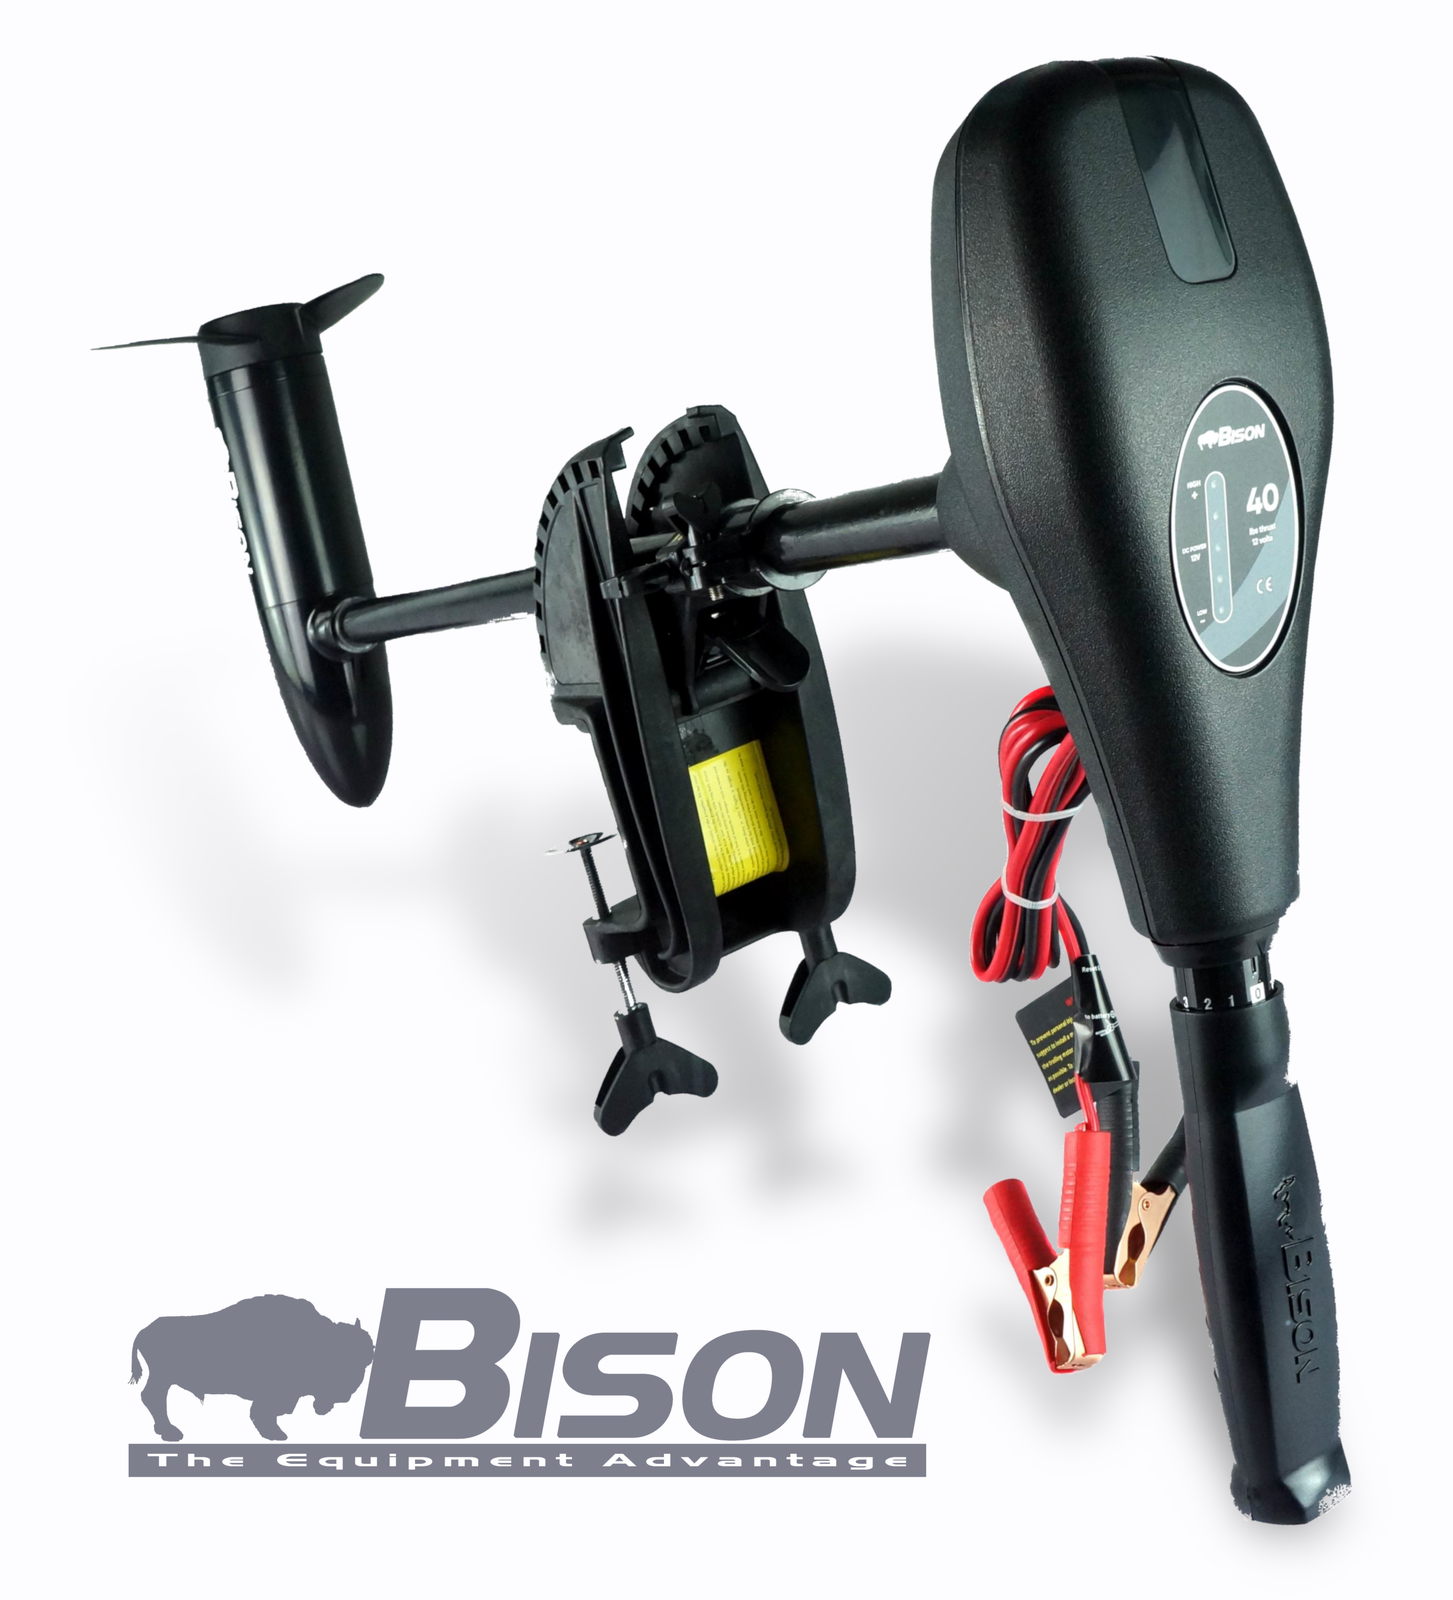 BISON 55ft/lb ELECTRIC OUTBOARD MOTOR MOTOR OUTBOARD 25b23d